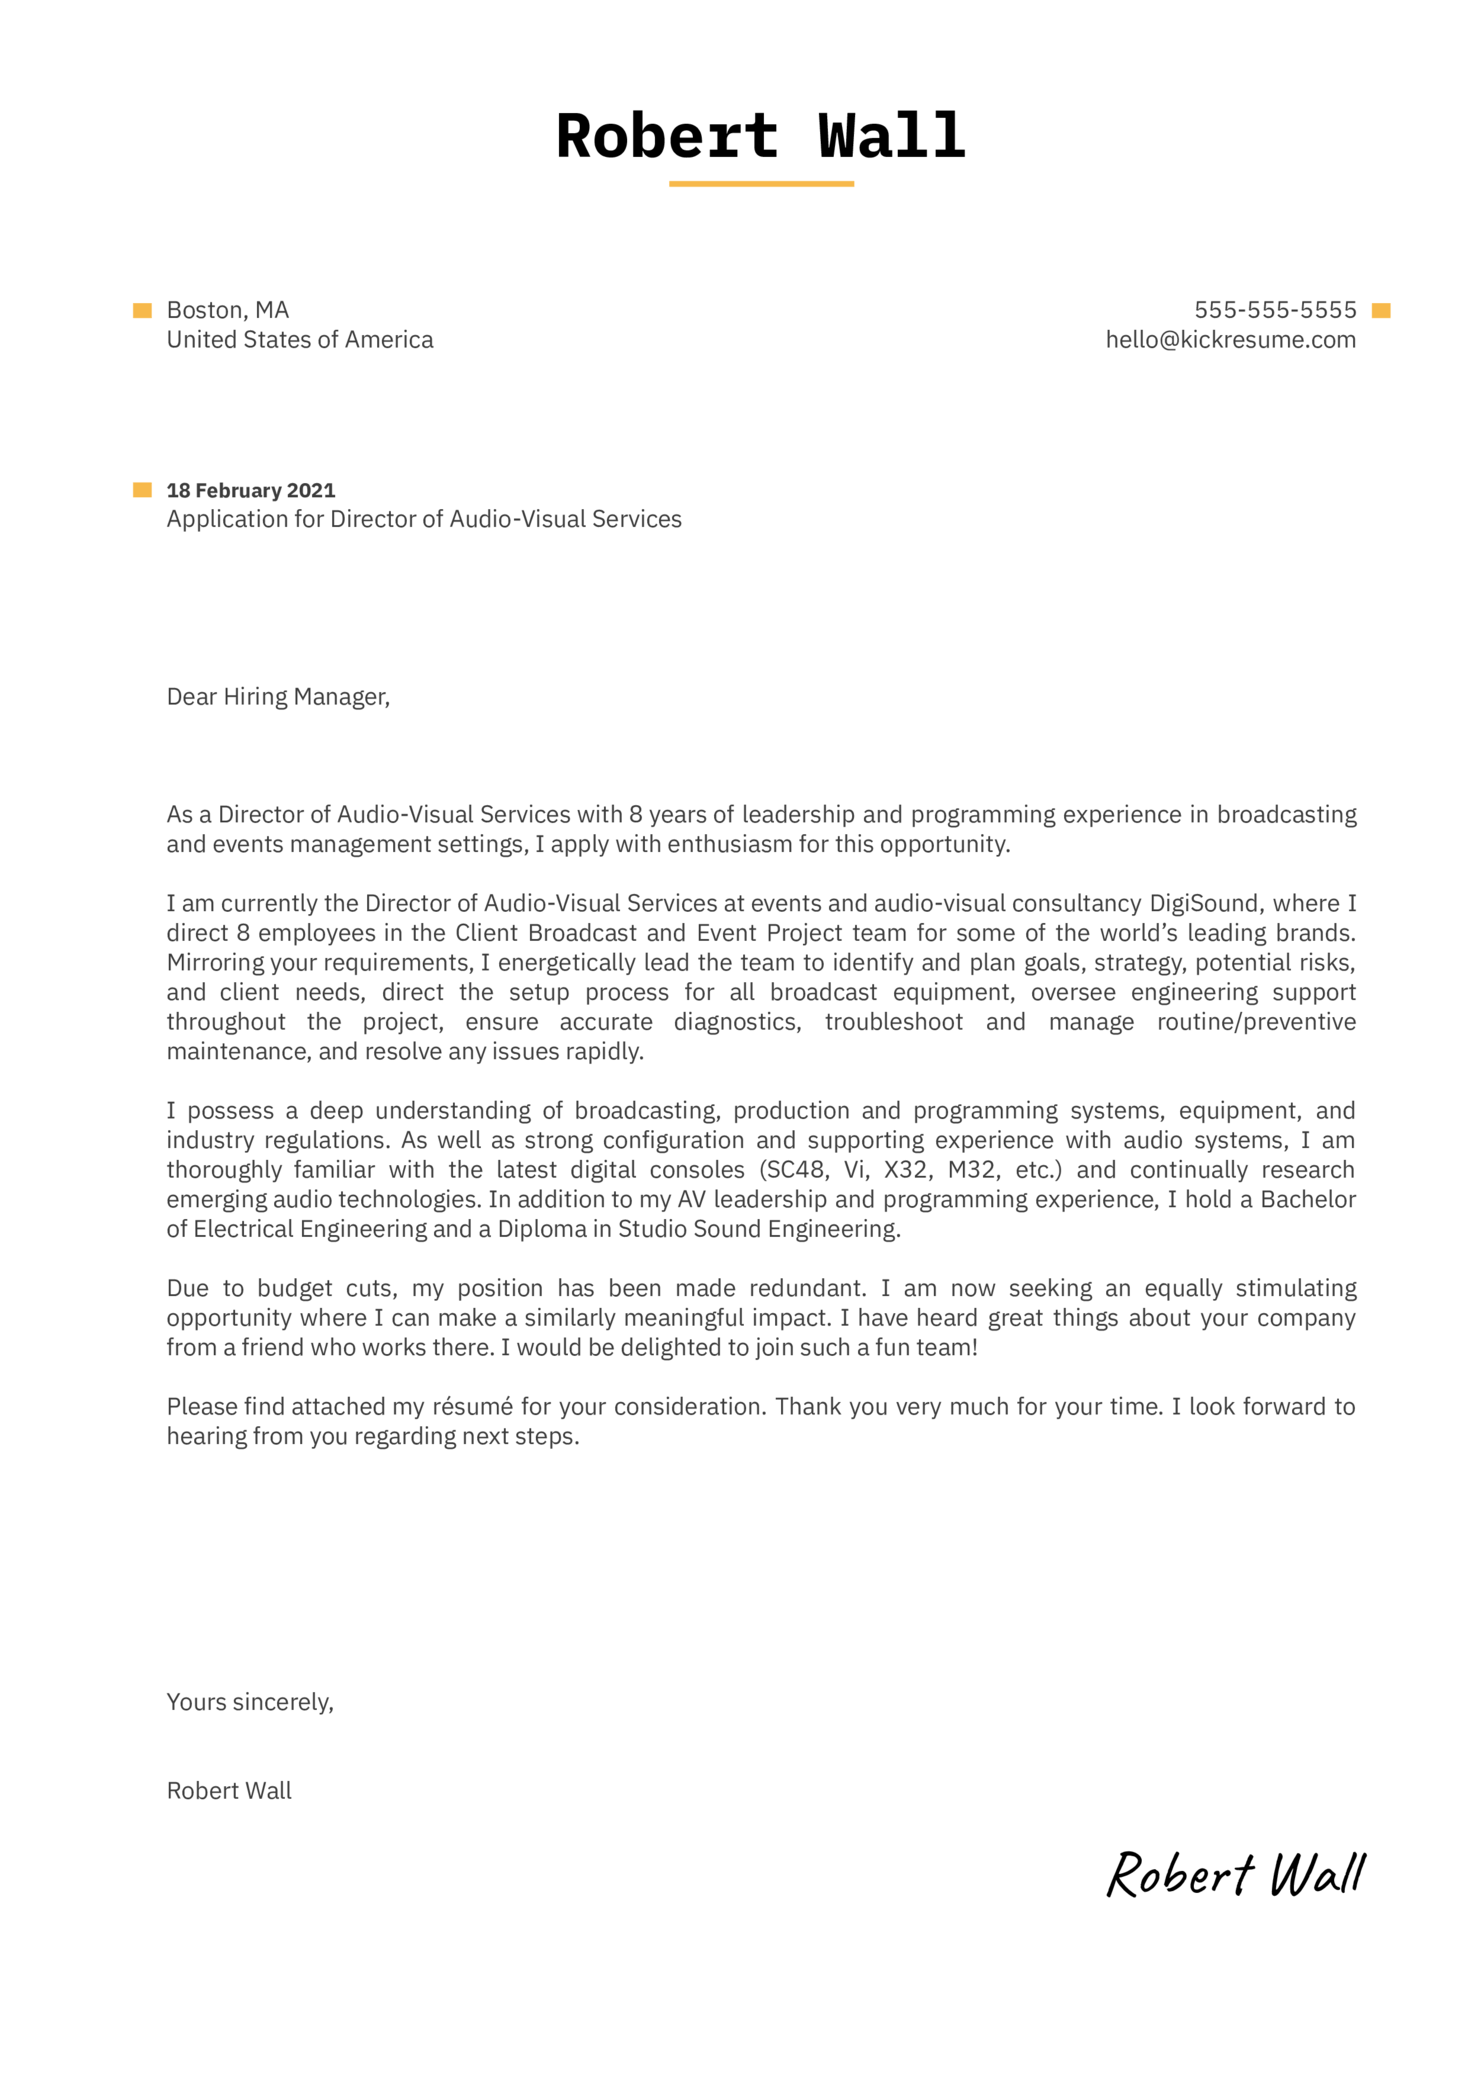 Director of Audio-Visual Services Cover Letter Sample